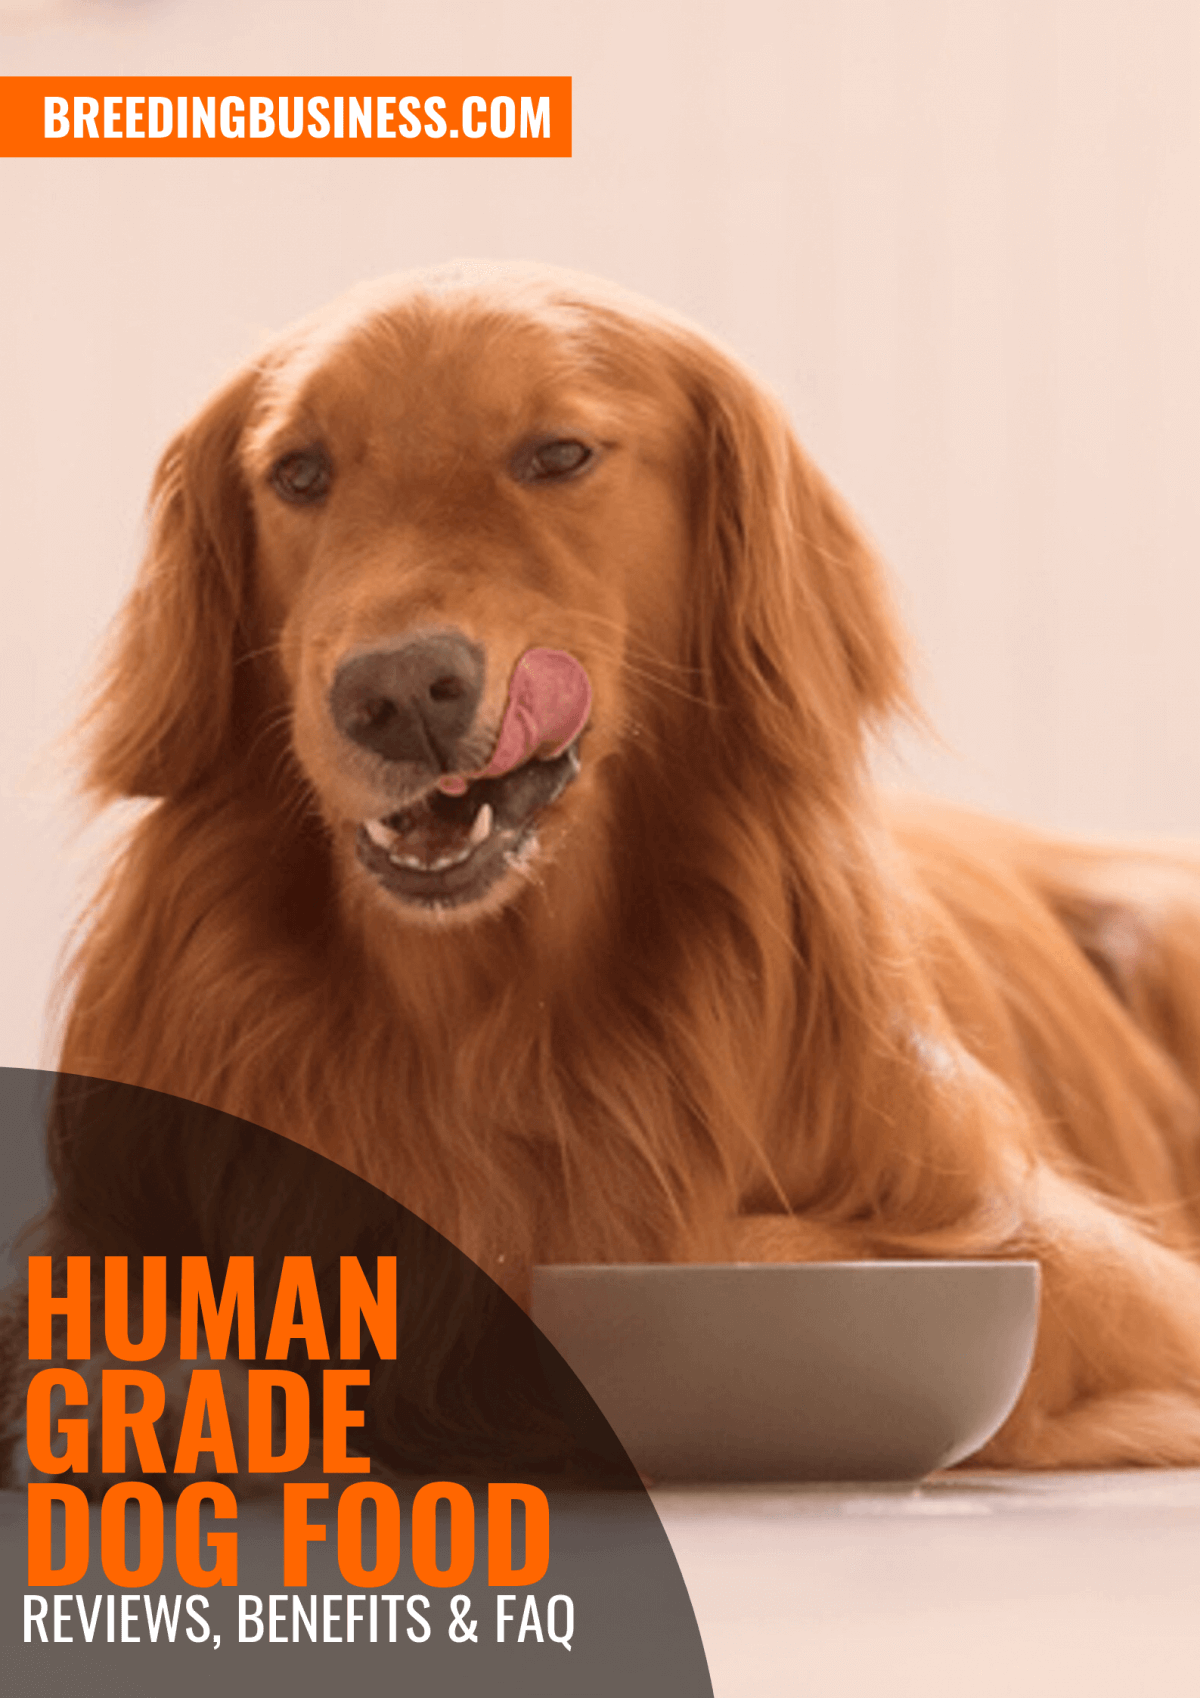 Human Grade Dog Foods – Reviews, Benefits & FAQ